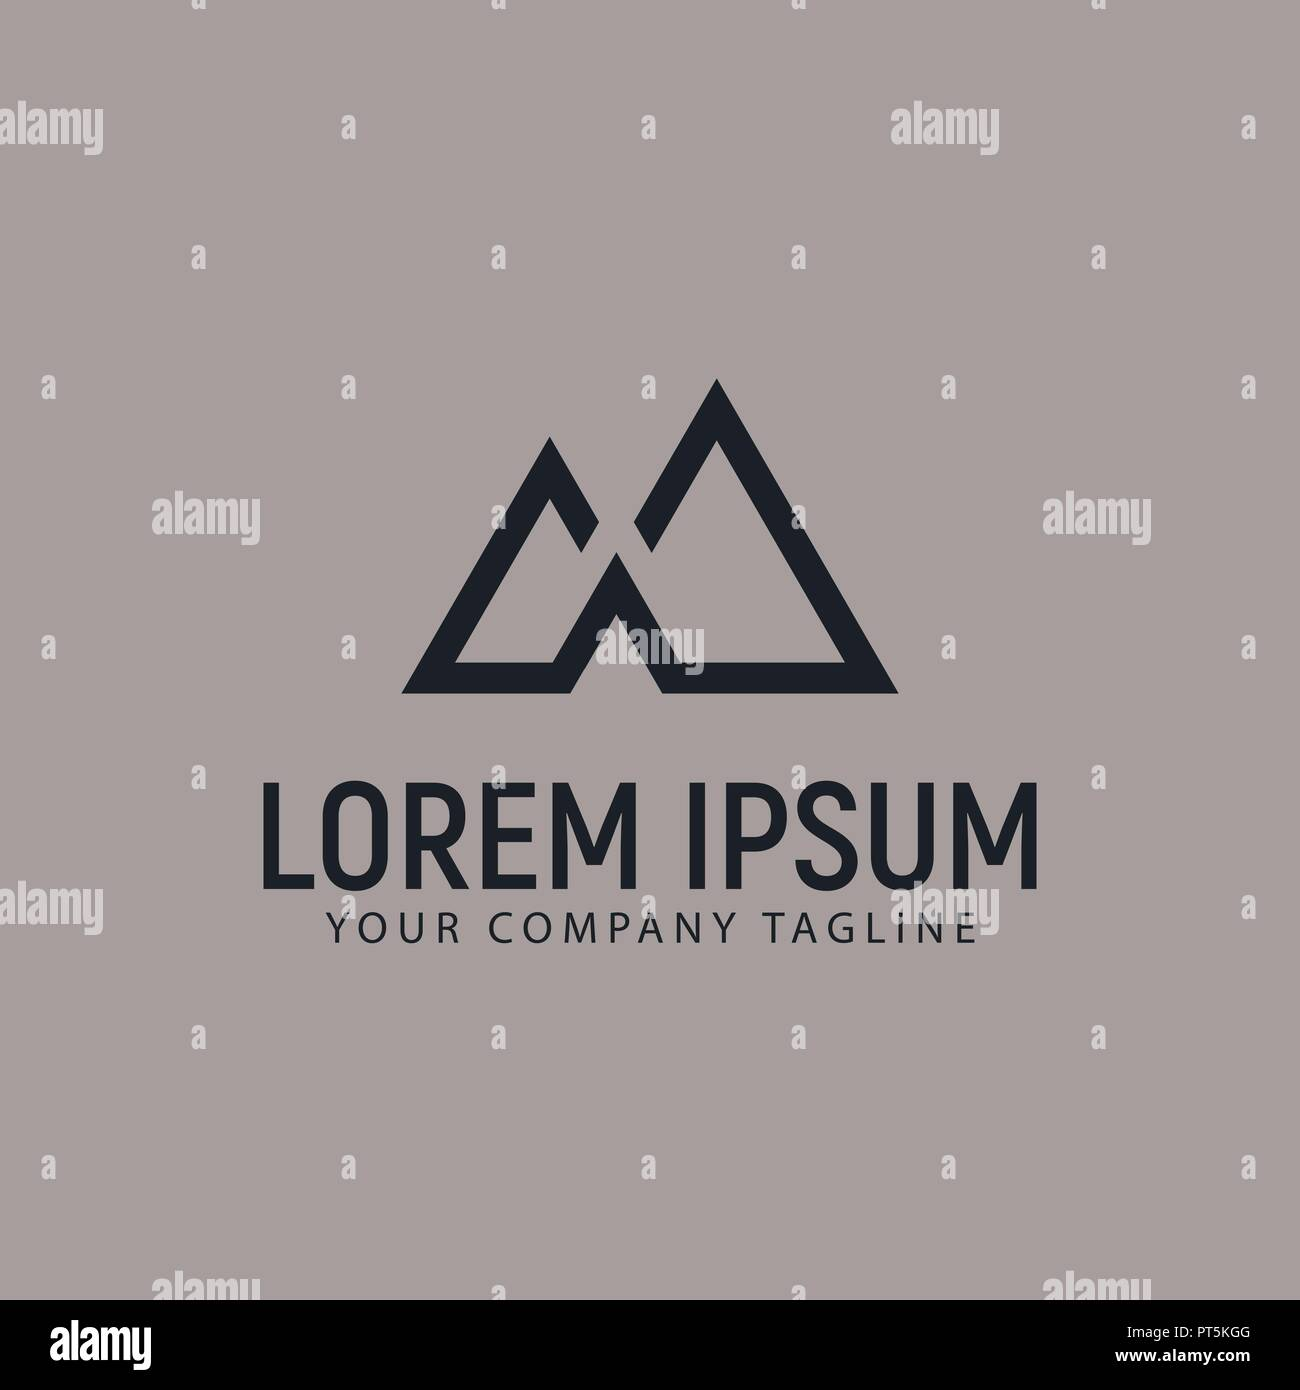 modern minimalist mountain logo design concept template - Stock Vector